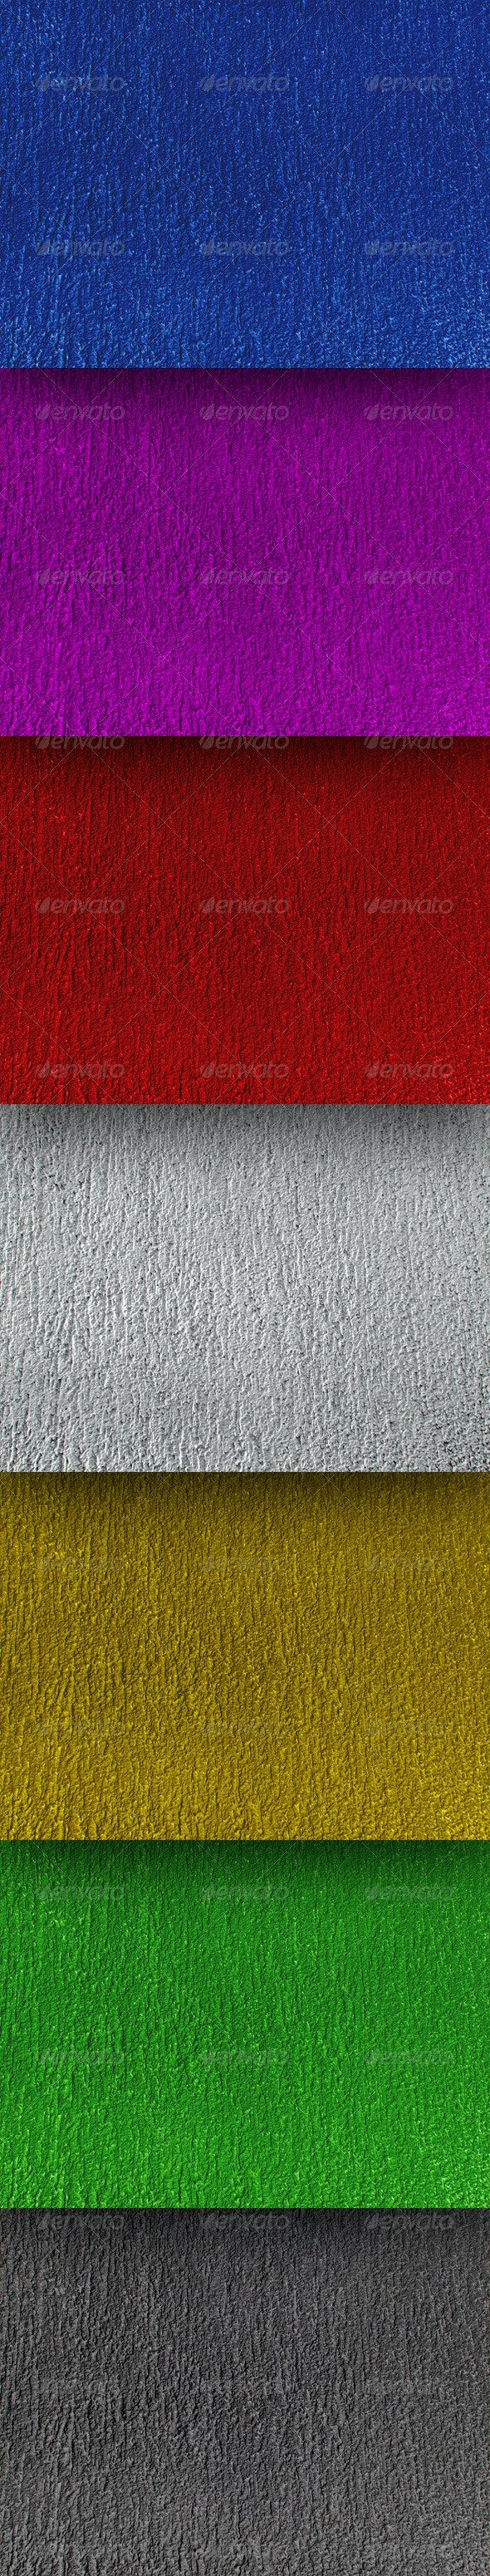 Color my Walls - Backgrounds Decorative